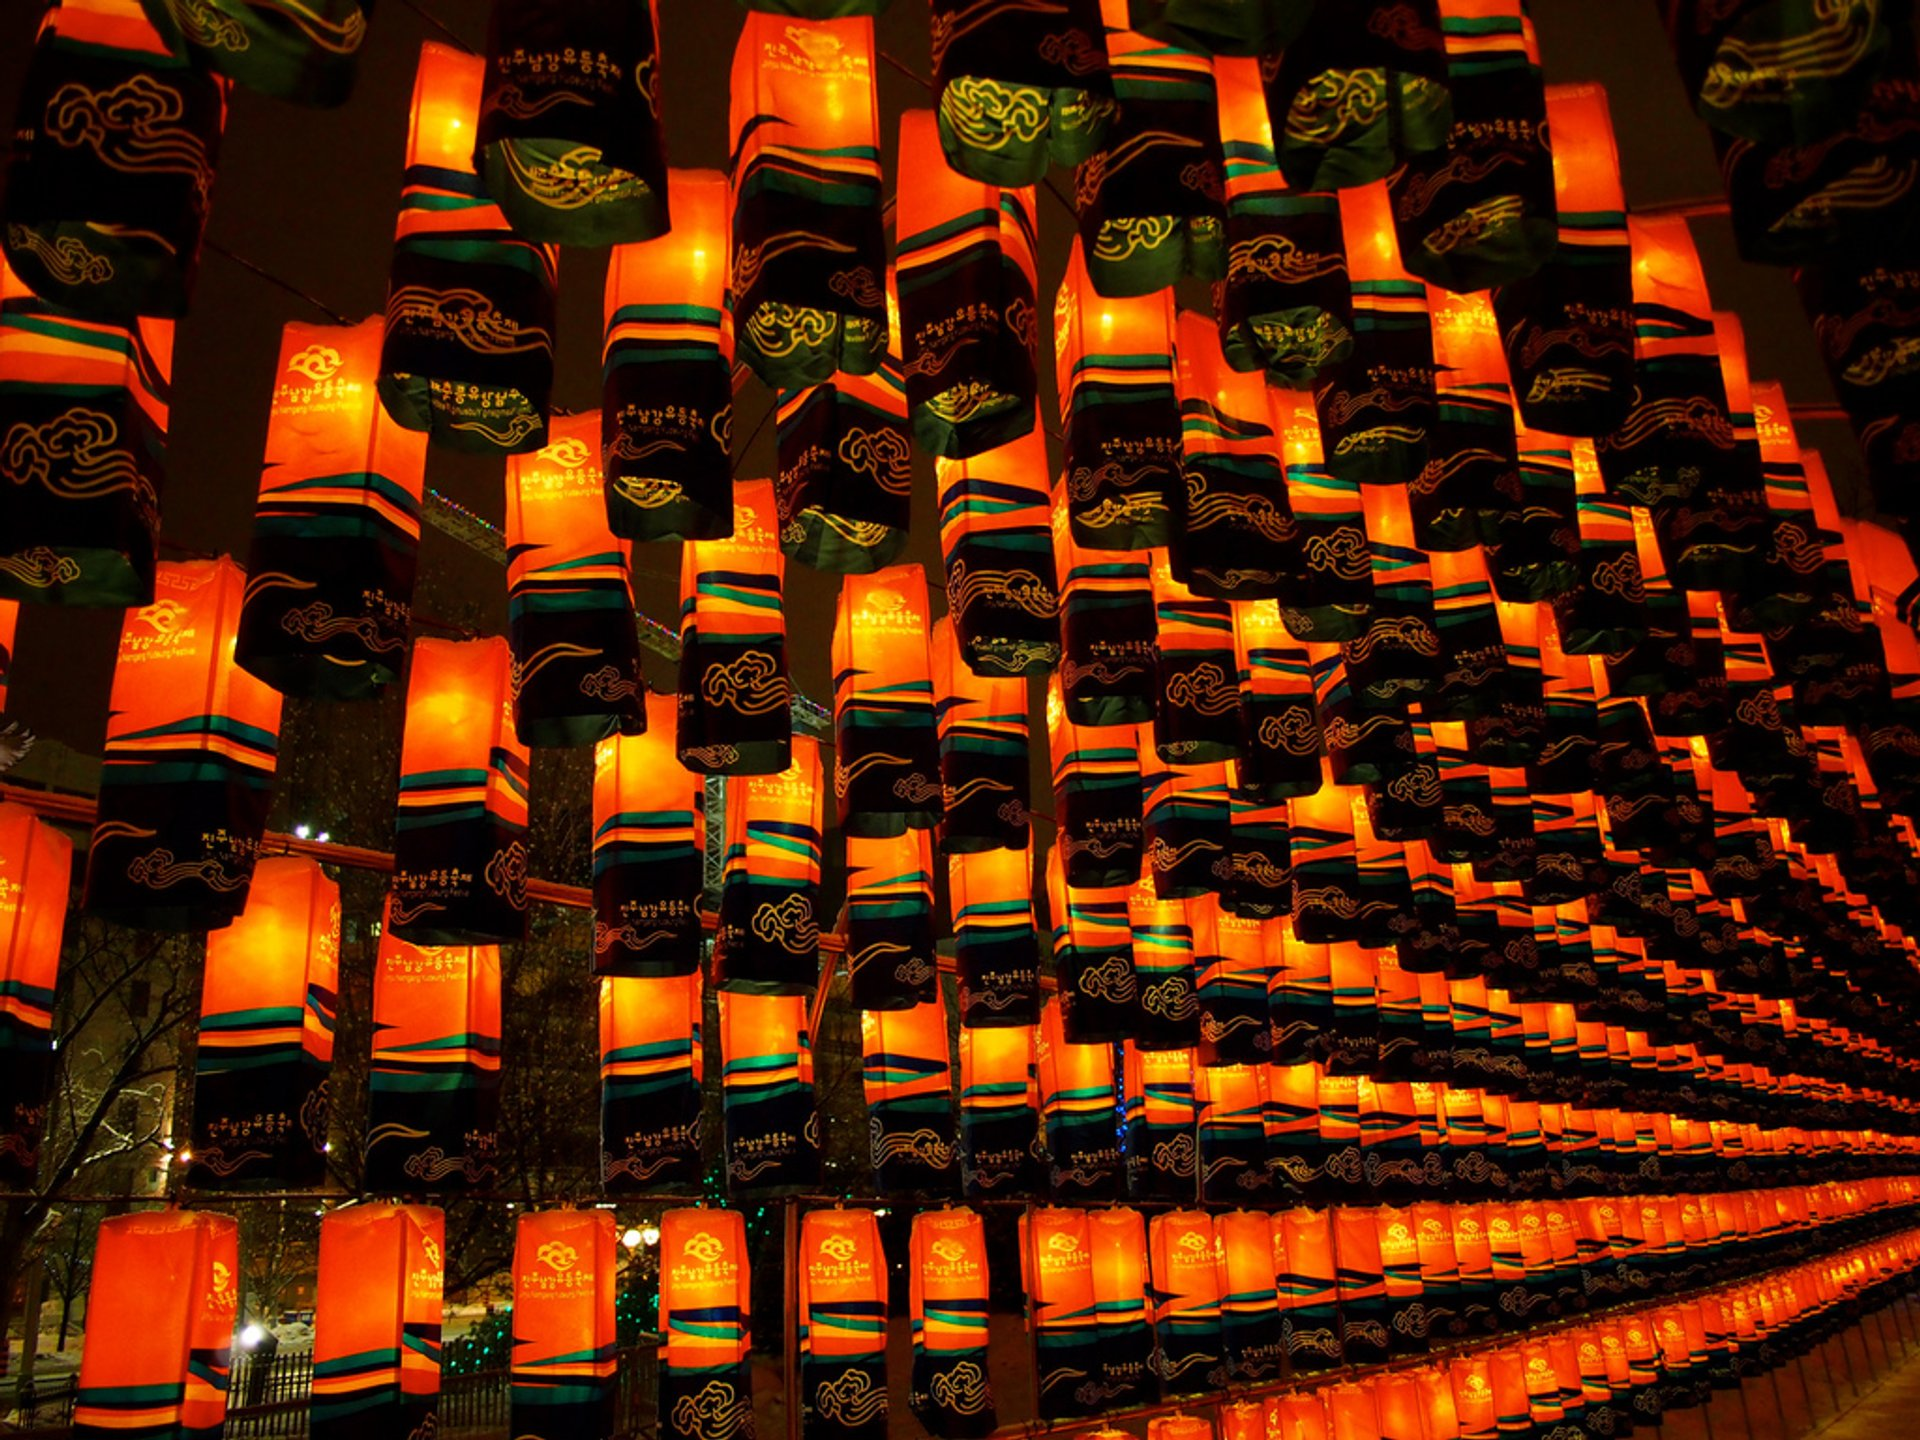 Lanterns at Namgang Yudeung Lantern Festival, Jinju, South Korea 2020